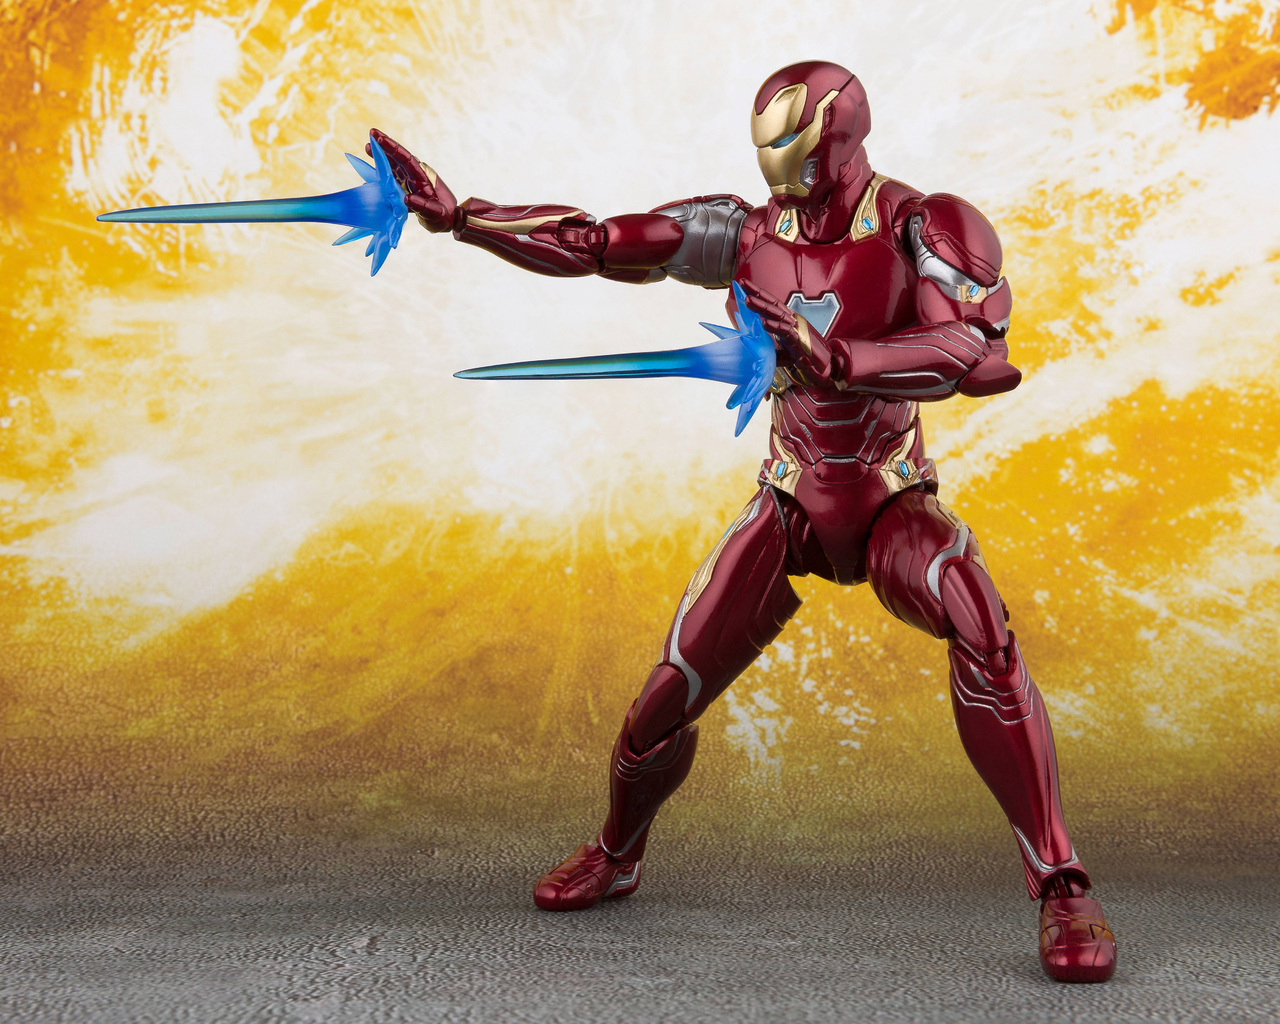 iron-man-action-figure-5k-ml.jpg